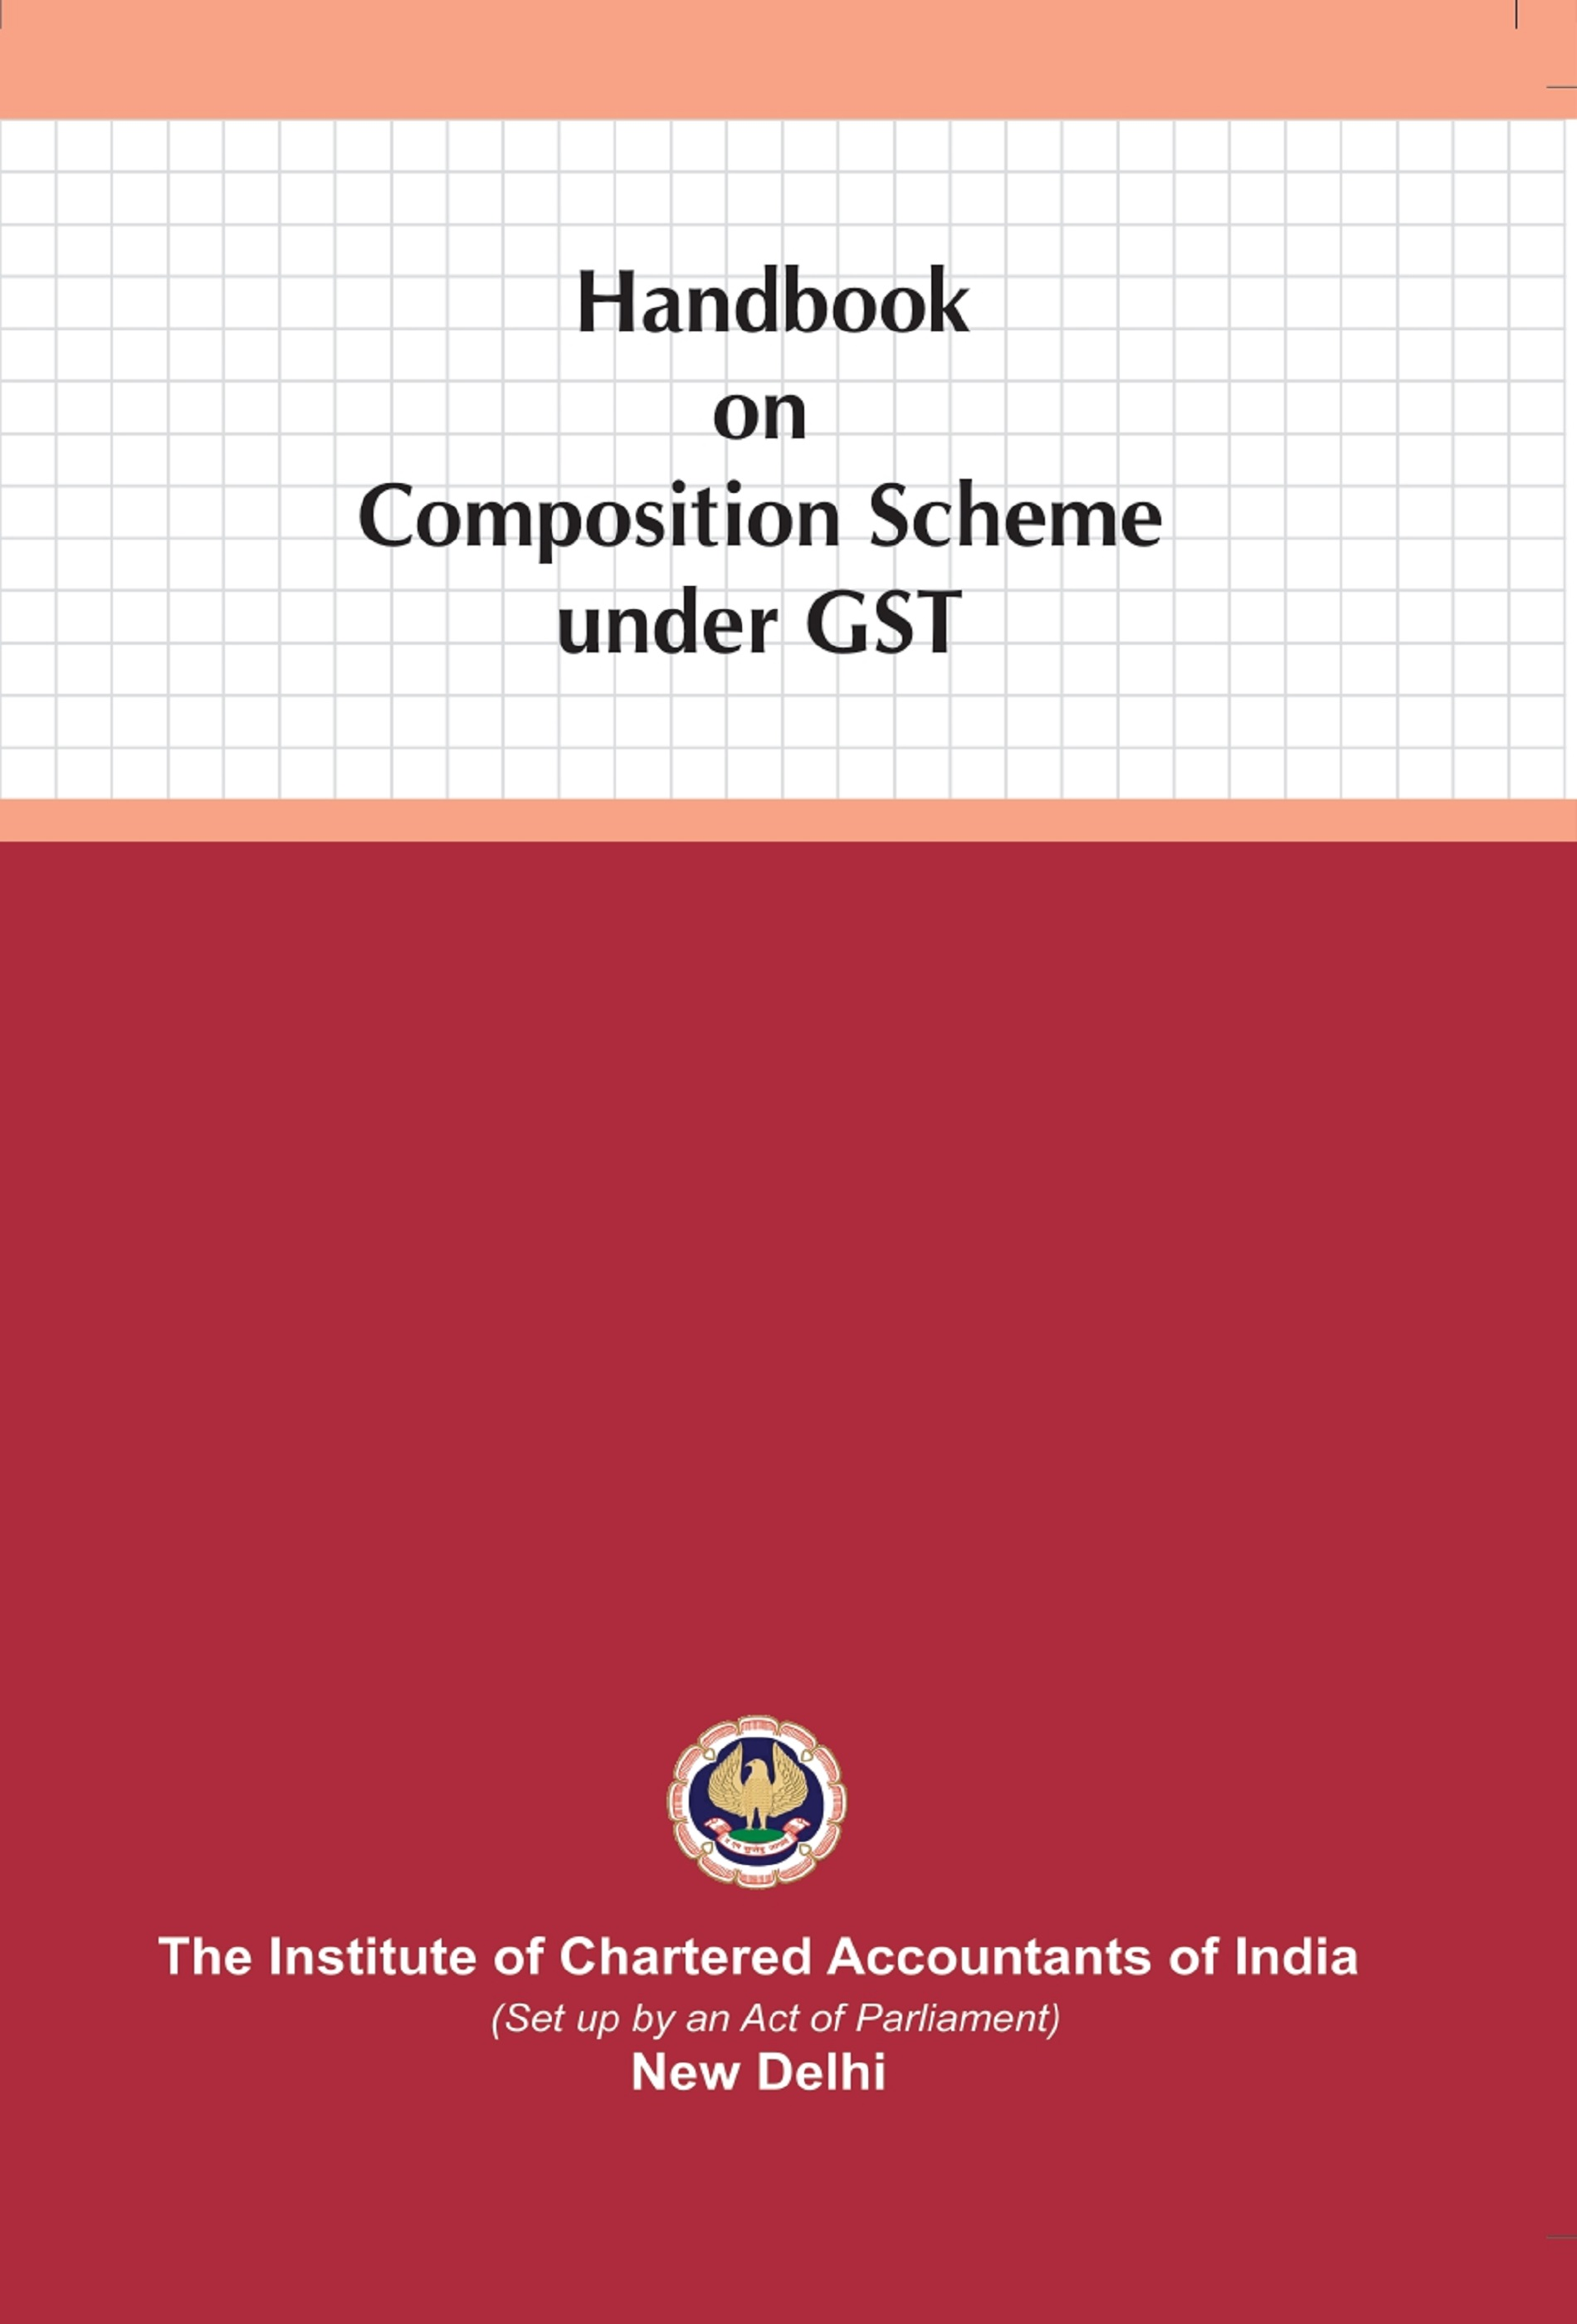 Handbook on Composition Scheme under GST (August, 2020 Edition)